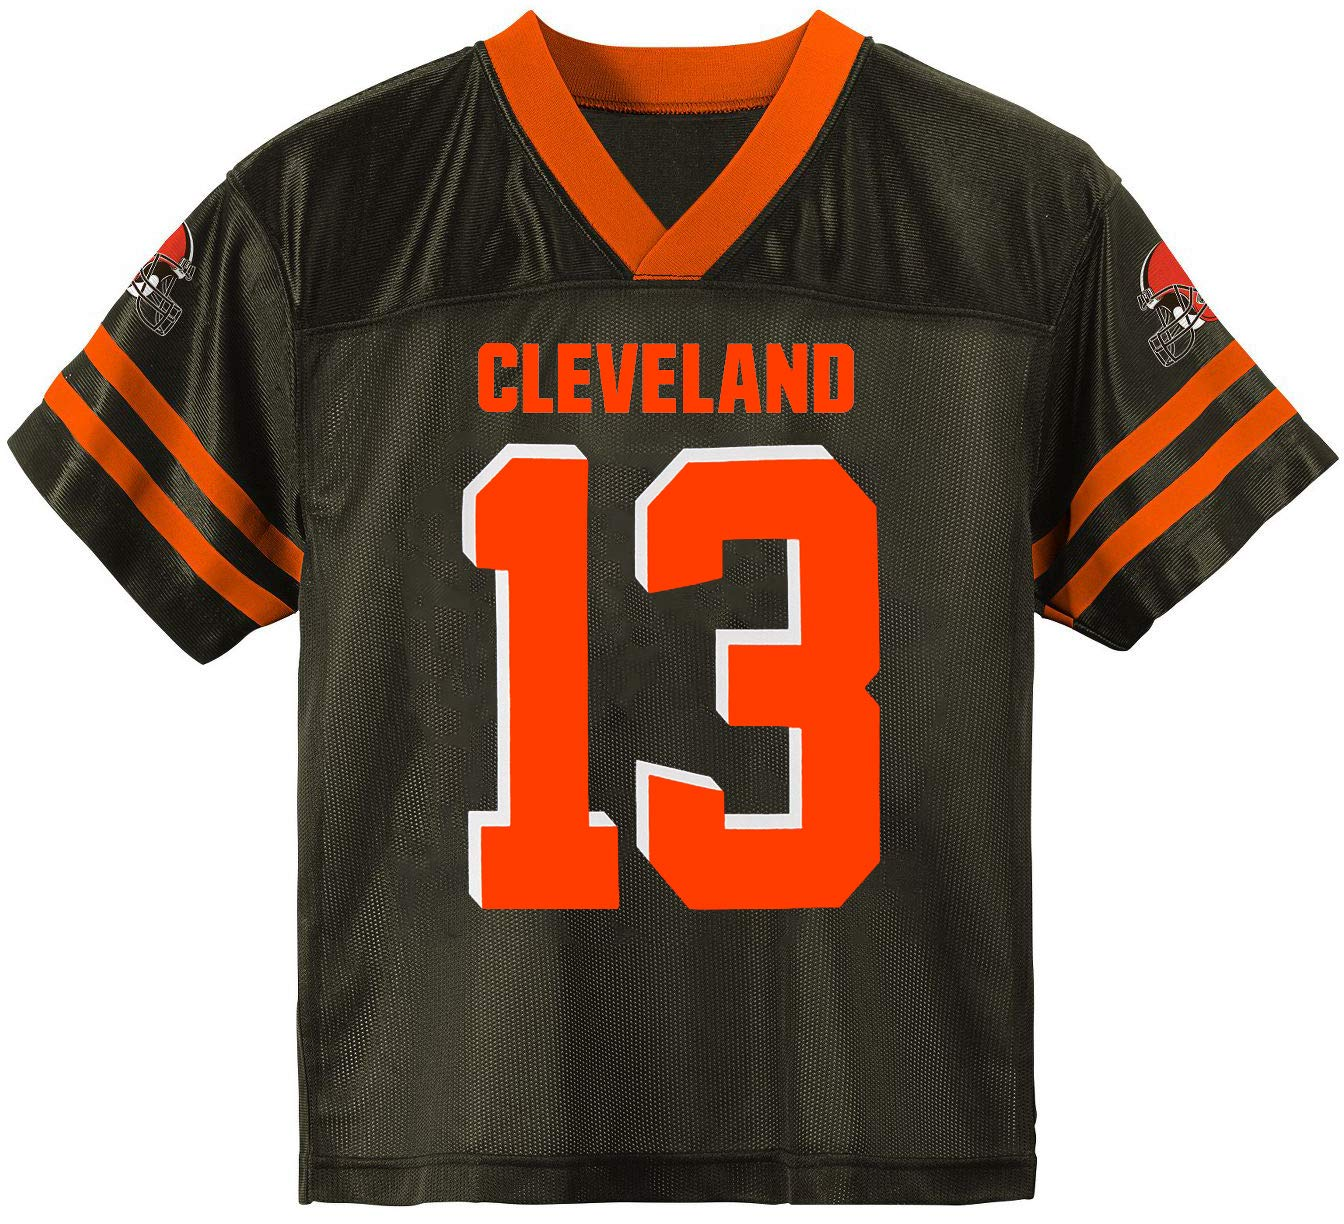 new style 0c1b5 593ac Amazon.com : Outerstuff Odell Beckham Jr Cleveland Browns ...